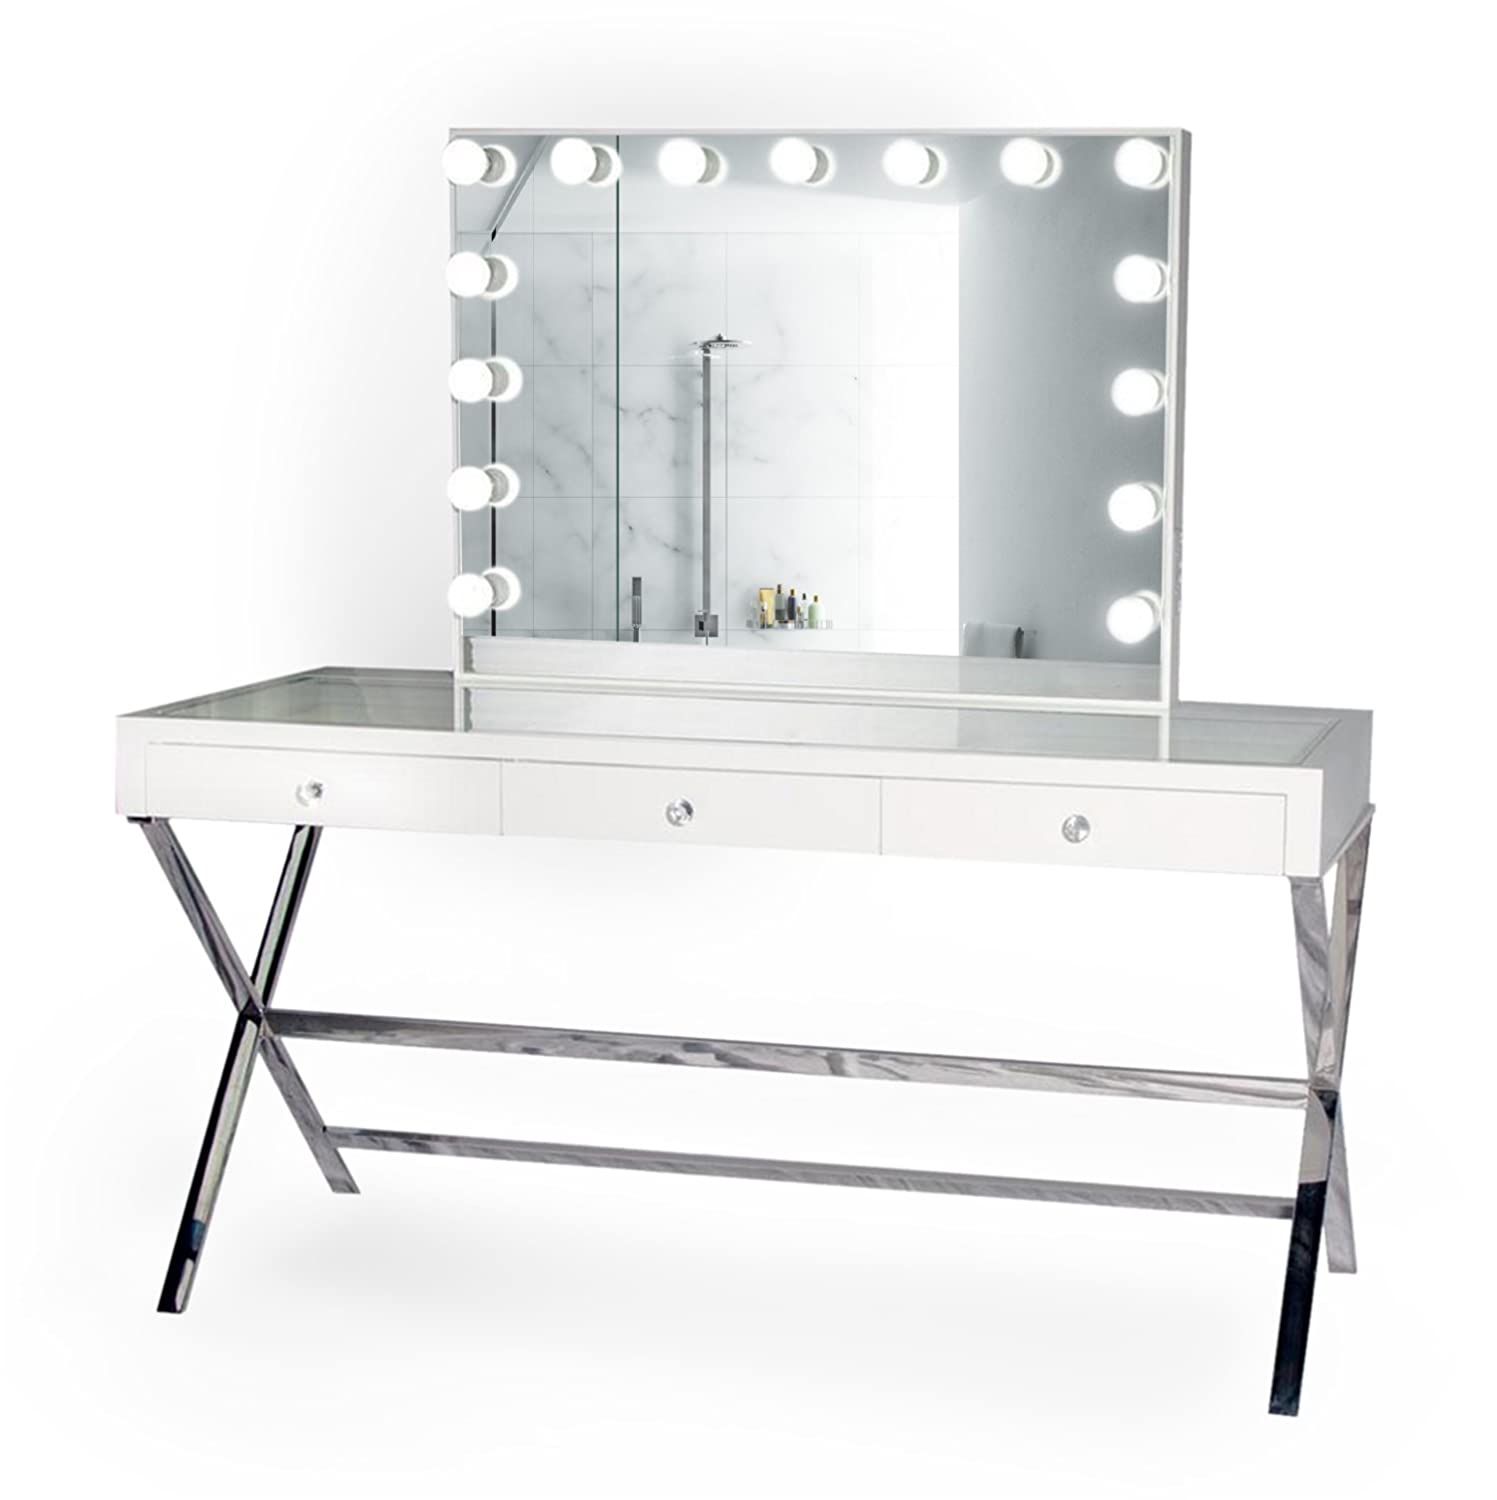 Amazon com krugg glamarous 60 vanity makeup table w polished legs chair led hollywood mirror kitchen dining